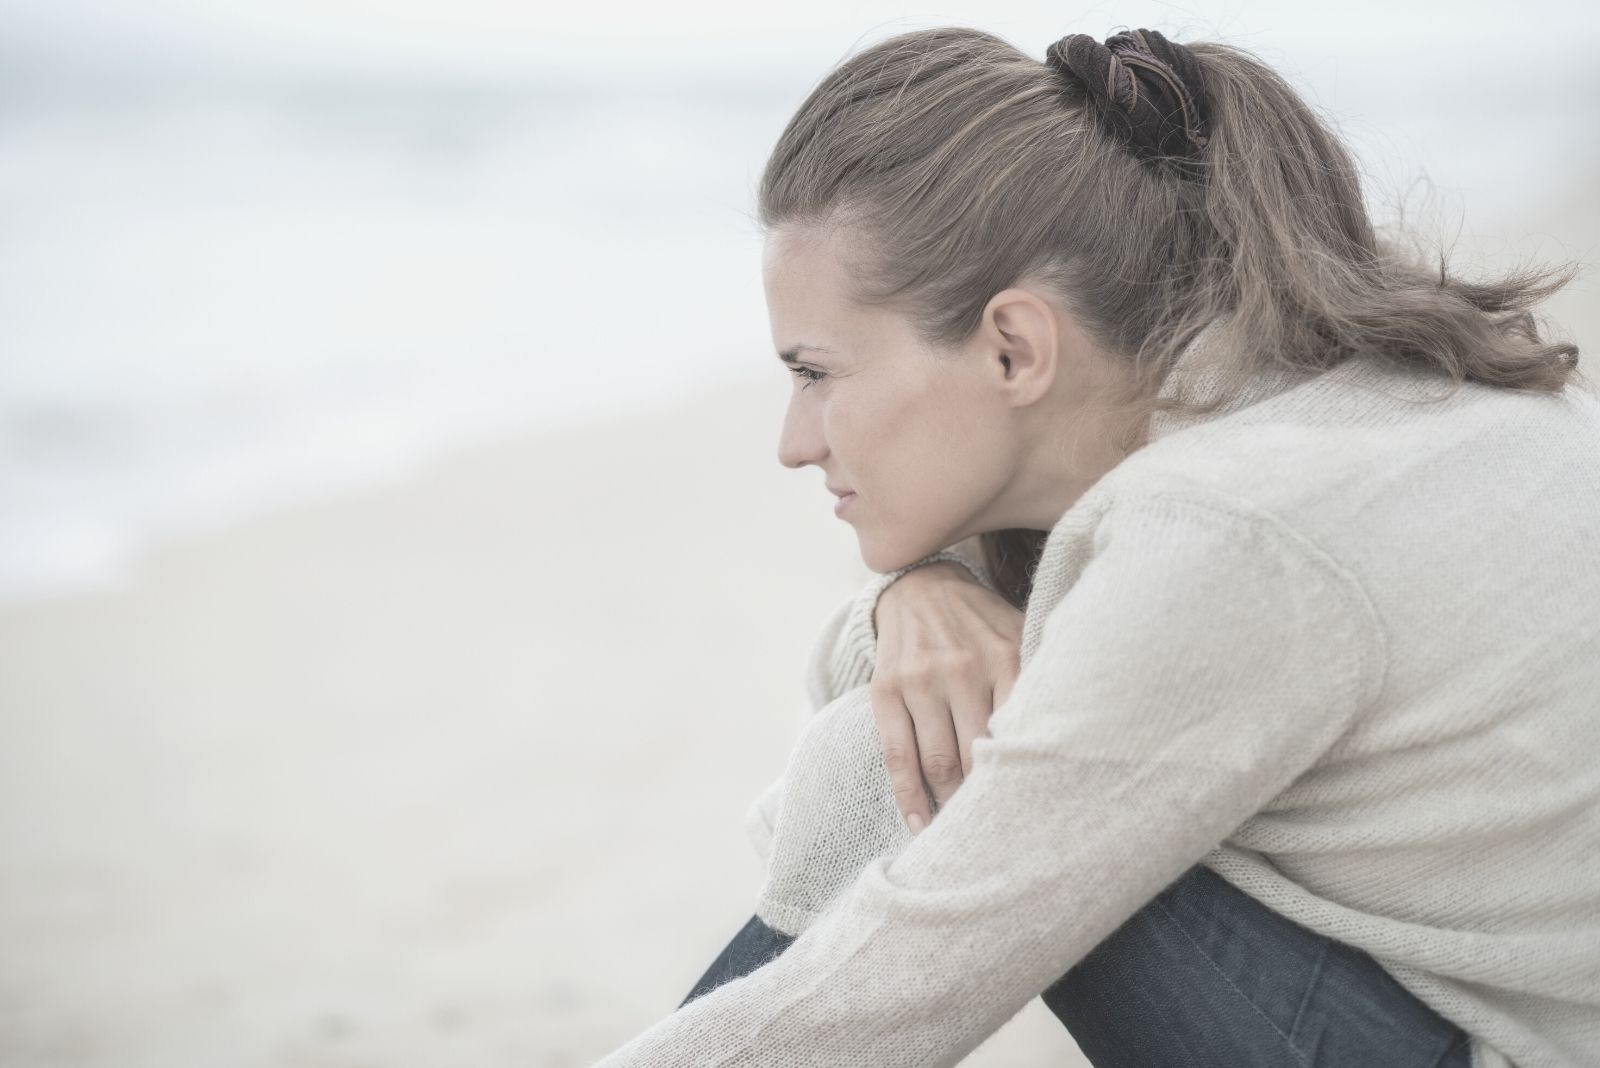 calm woman sitting on the beach contemplating